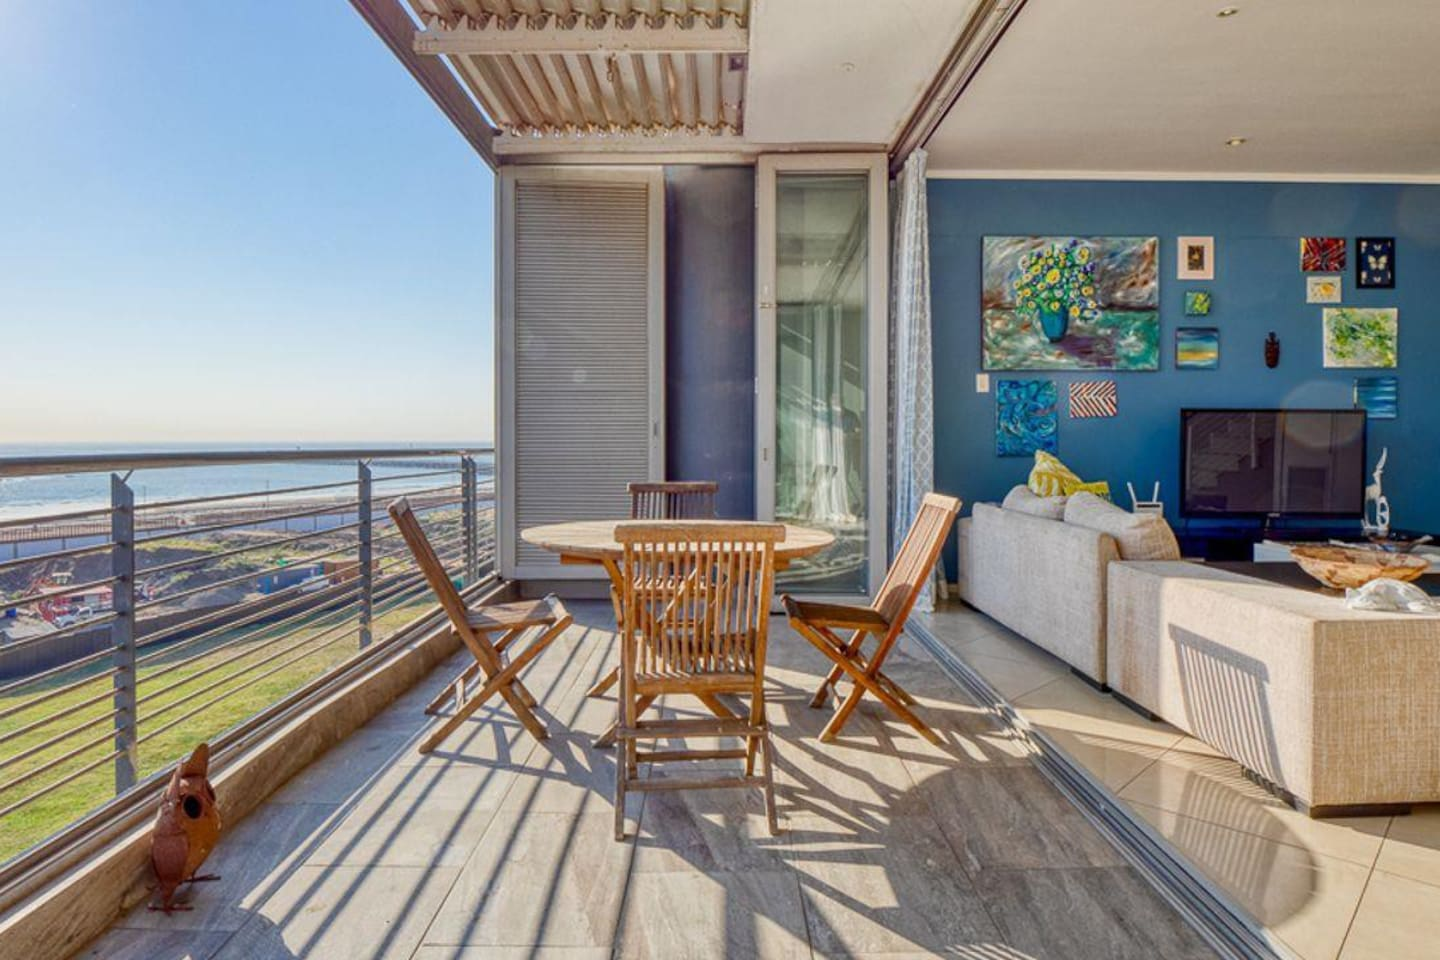 The large lower level living room opens onto the balcony overlooking the newly completed promenade and ocean.